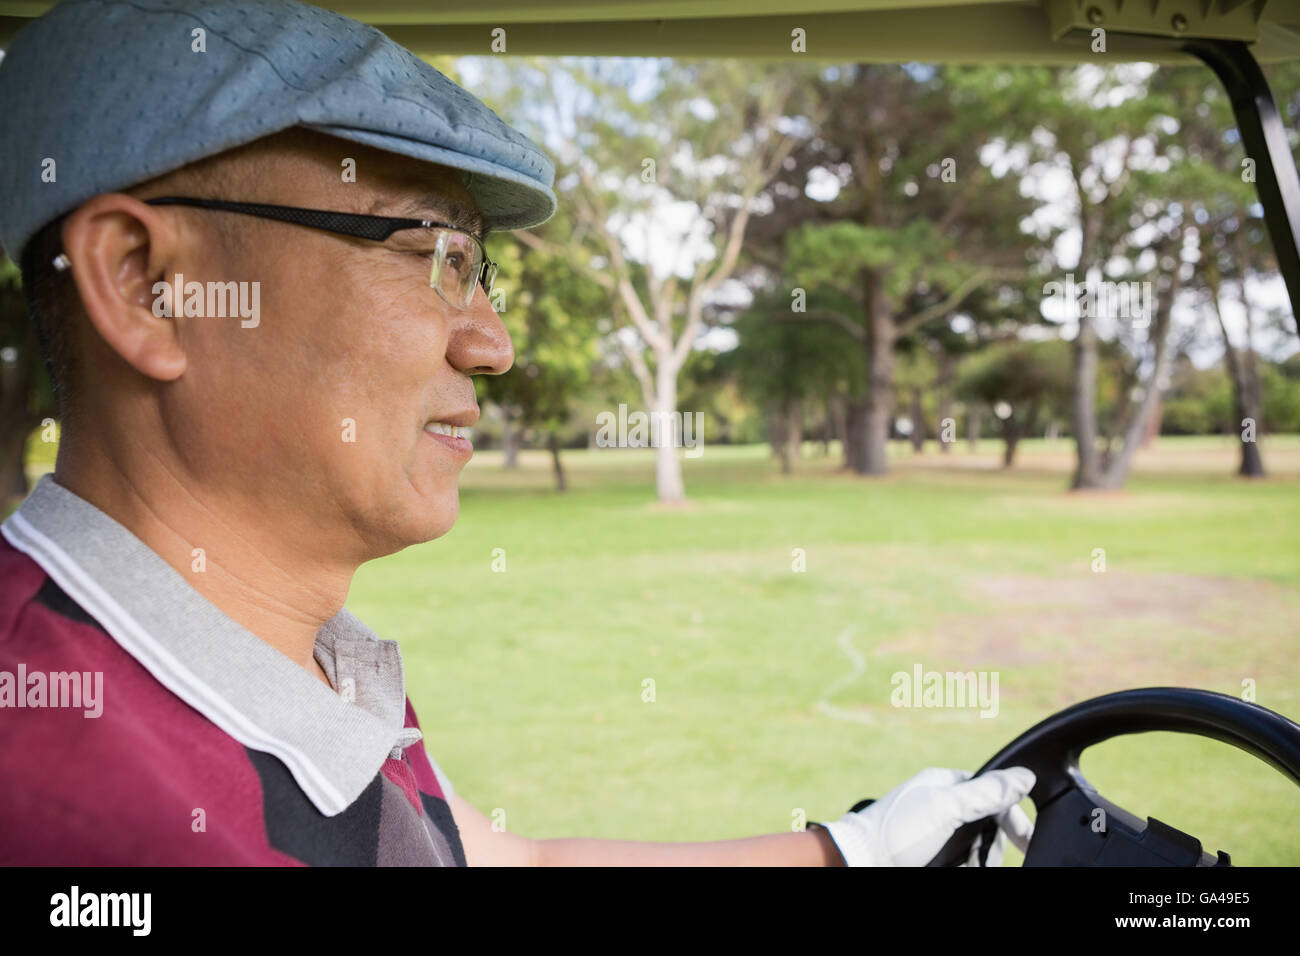 Golfer driving golf buggy - Stock Image